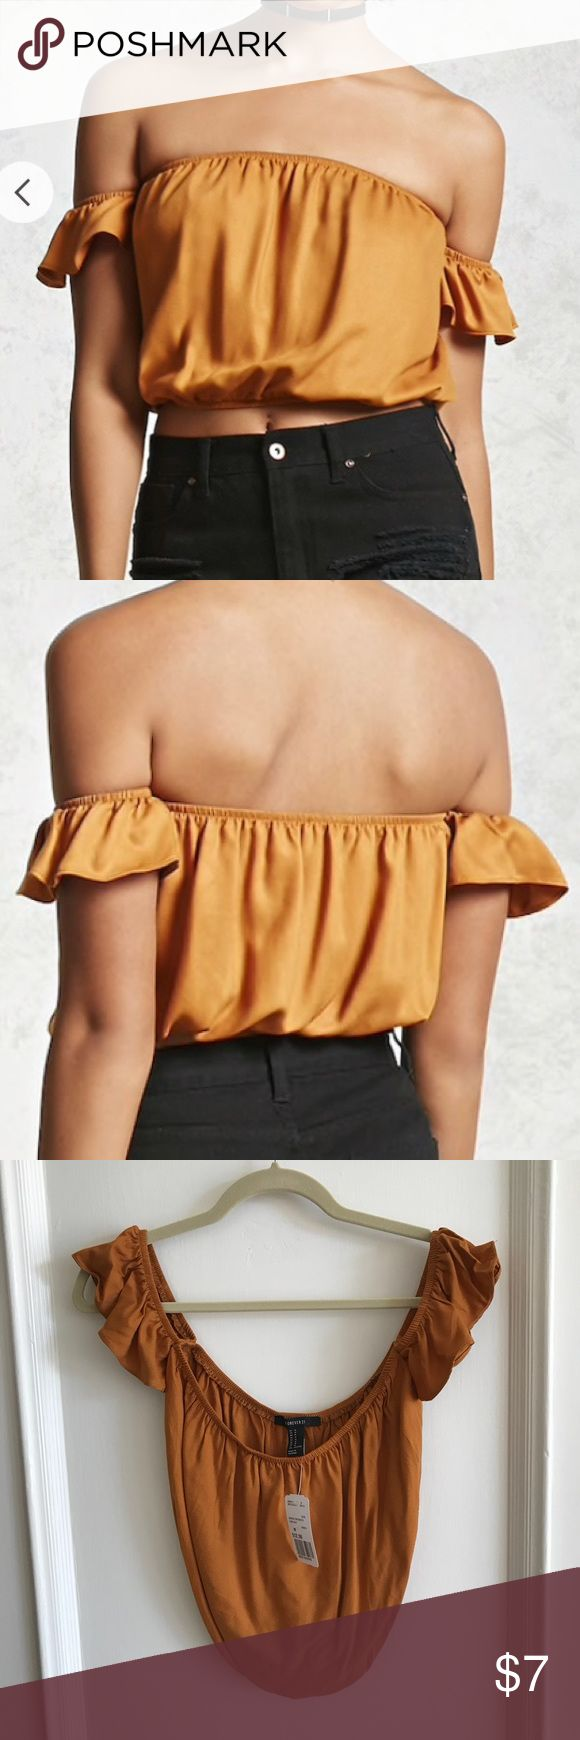 Off the shoulder camel crop top Brand new with tags; never worn Forever 21 Tops Crop Tops